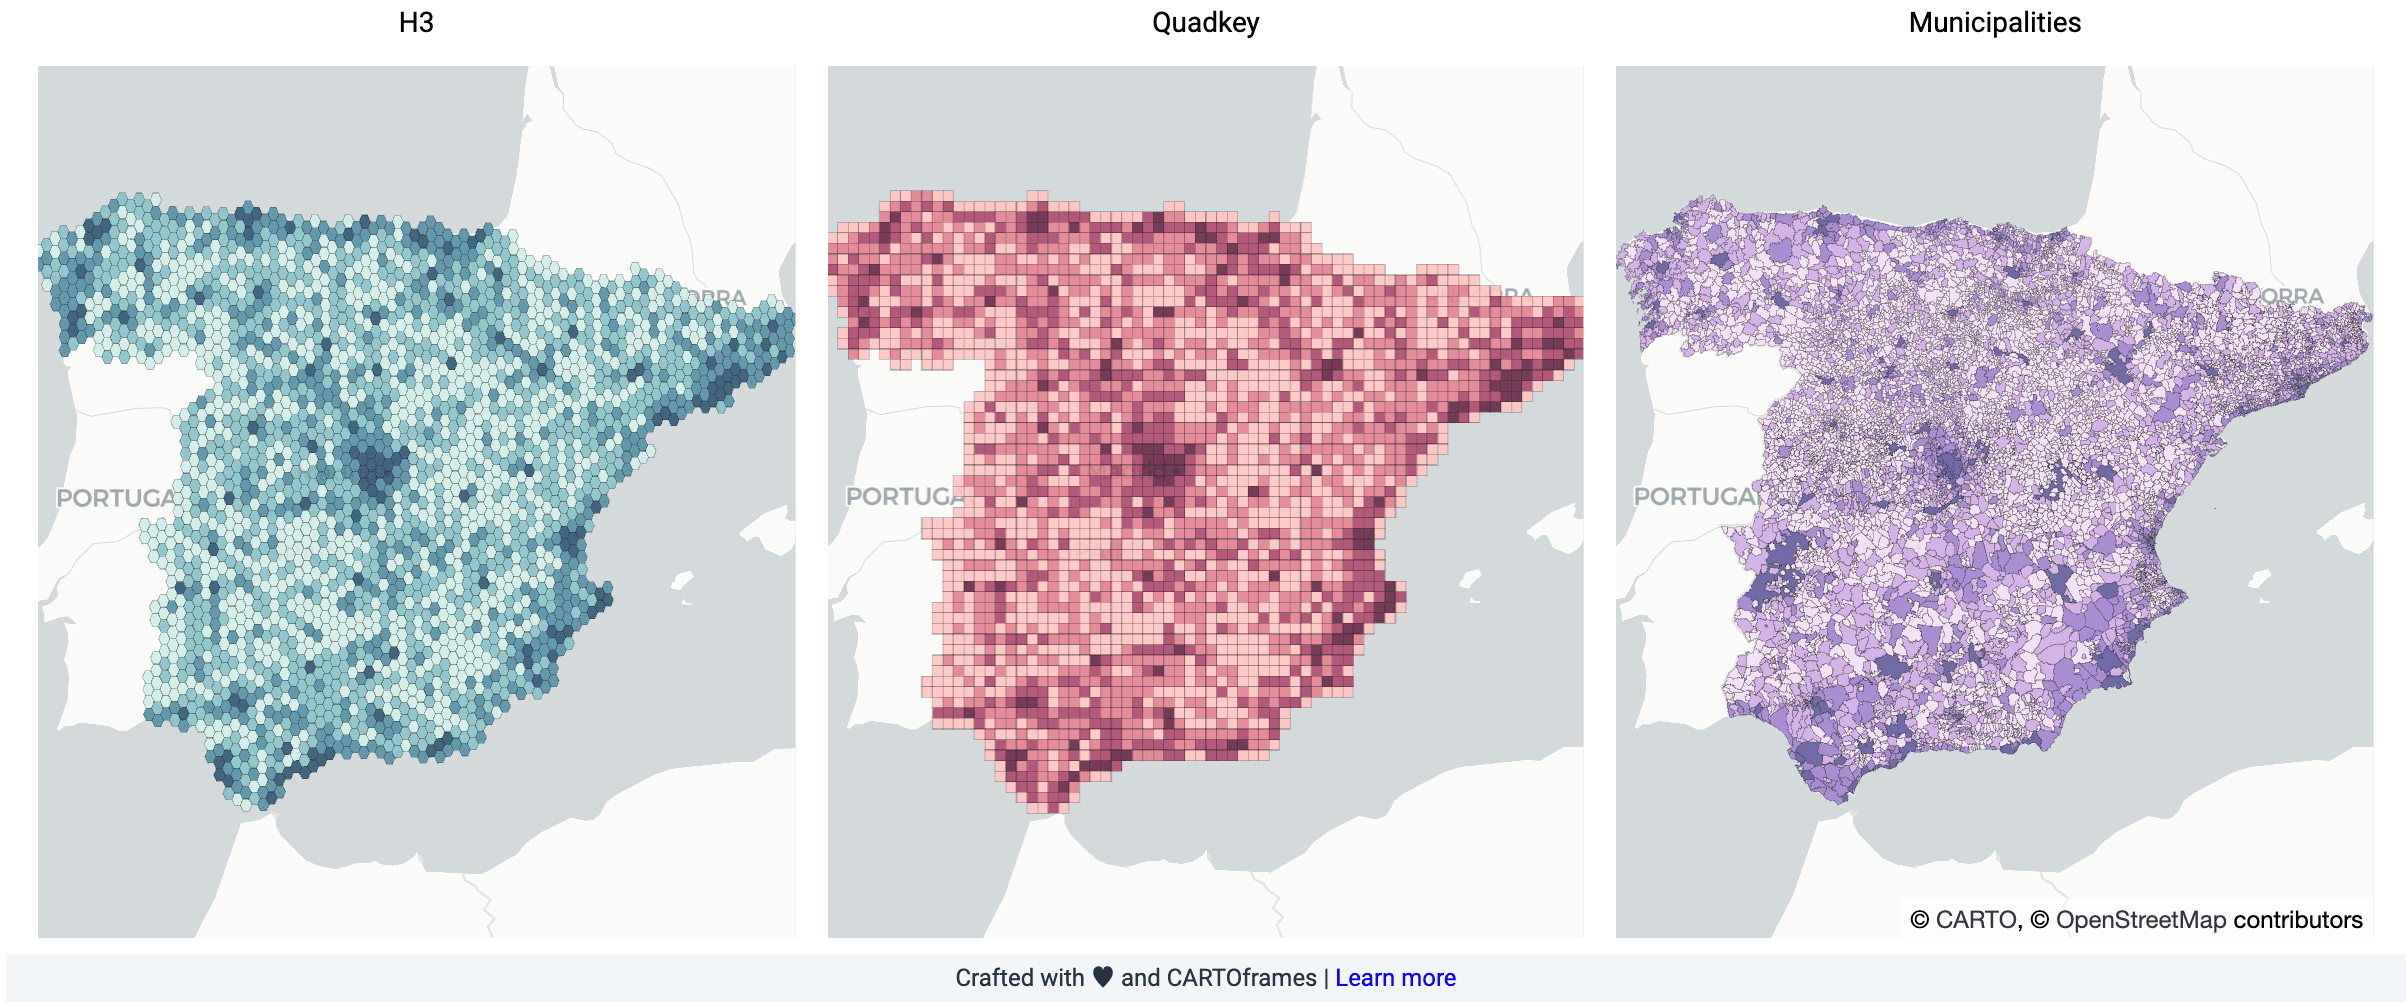 Comparison Spain map supply chain network optimization